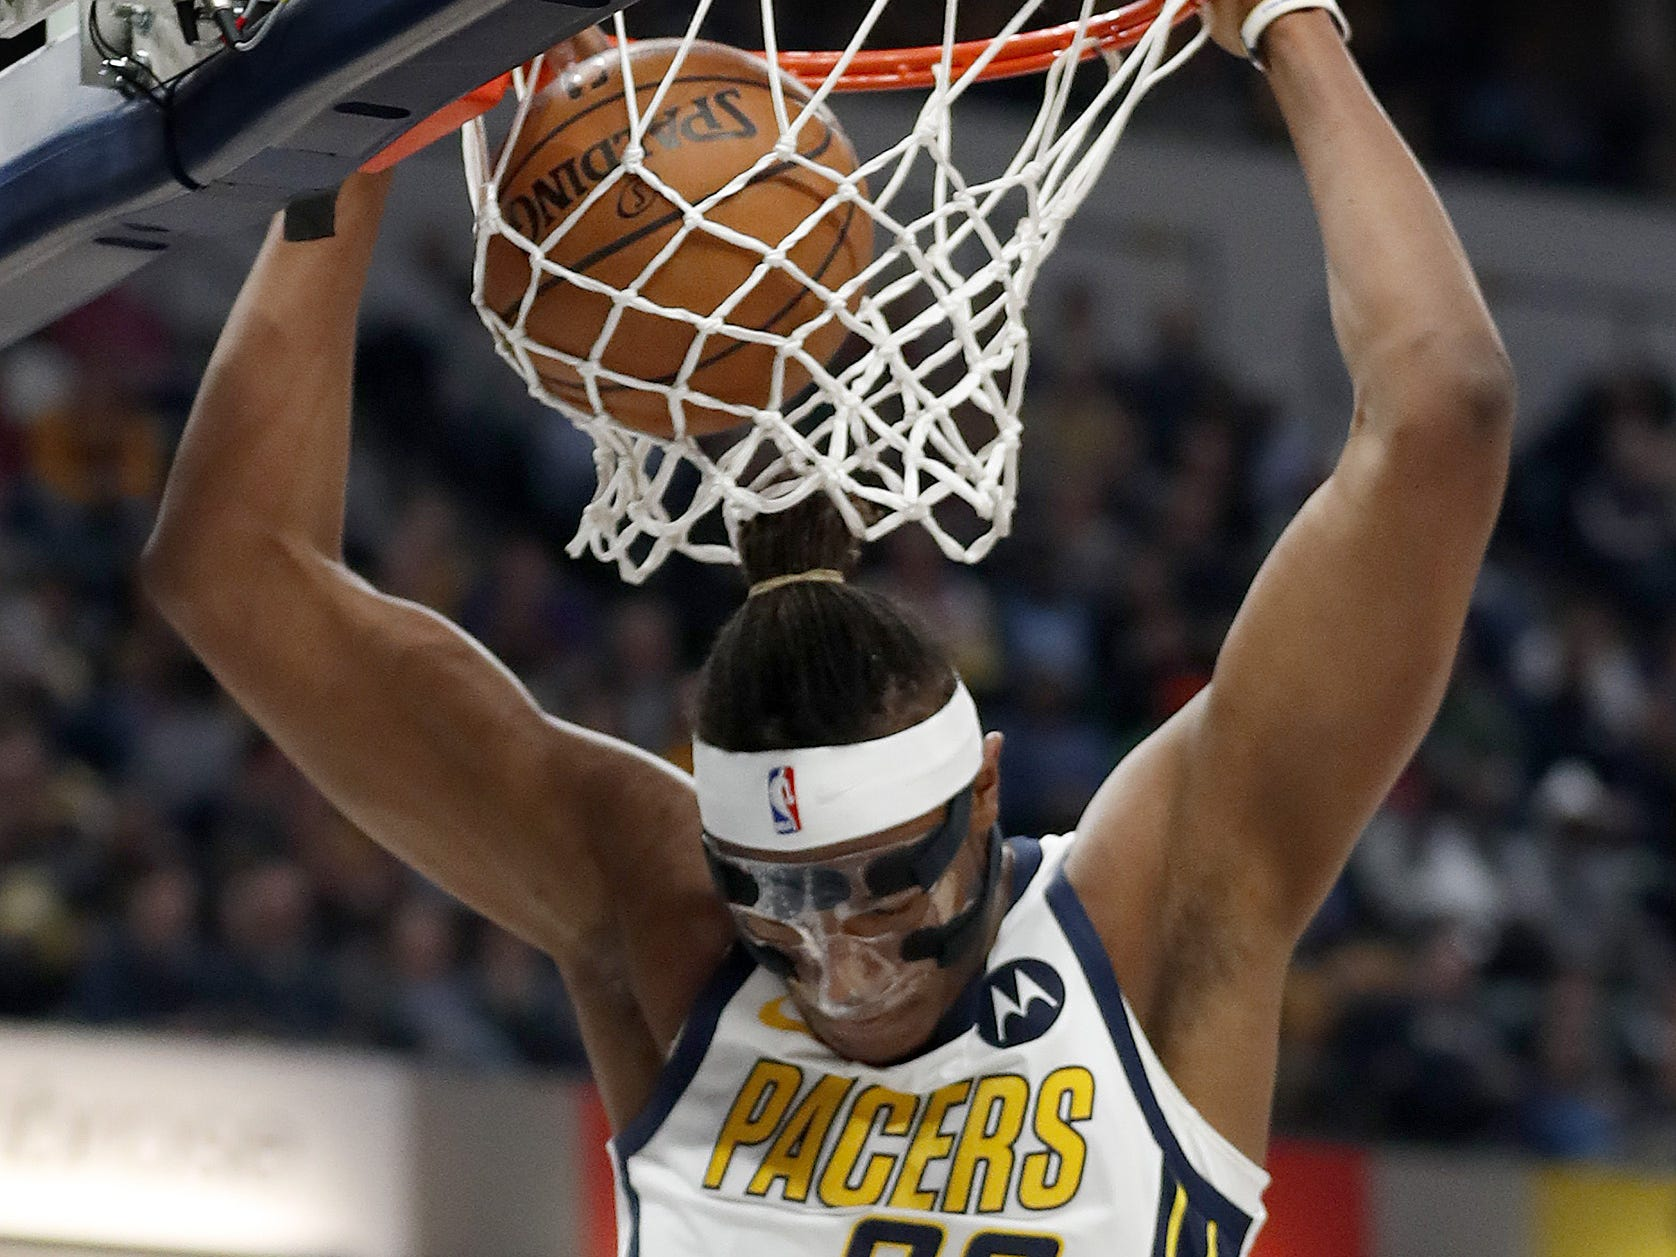 Indiana Pacers center Myles Turner (33) slams down two points against the Los Angeles Lakers in the first half of their game at Bankers Life Fieldouse on Tuesday, Feb. 5, 2019.